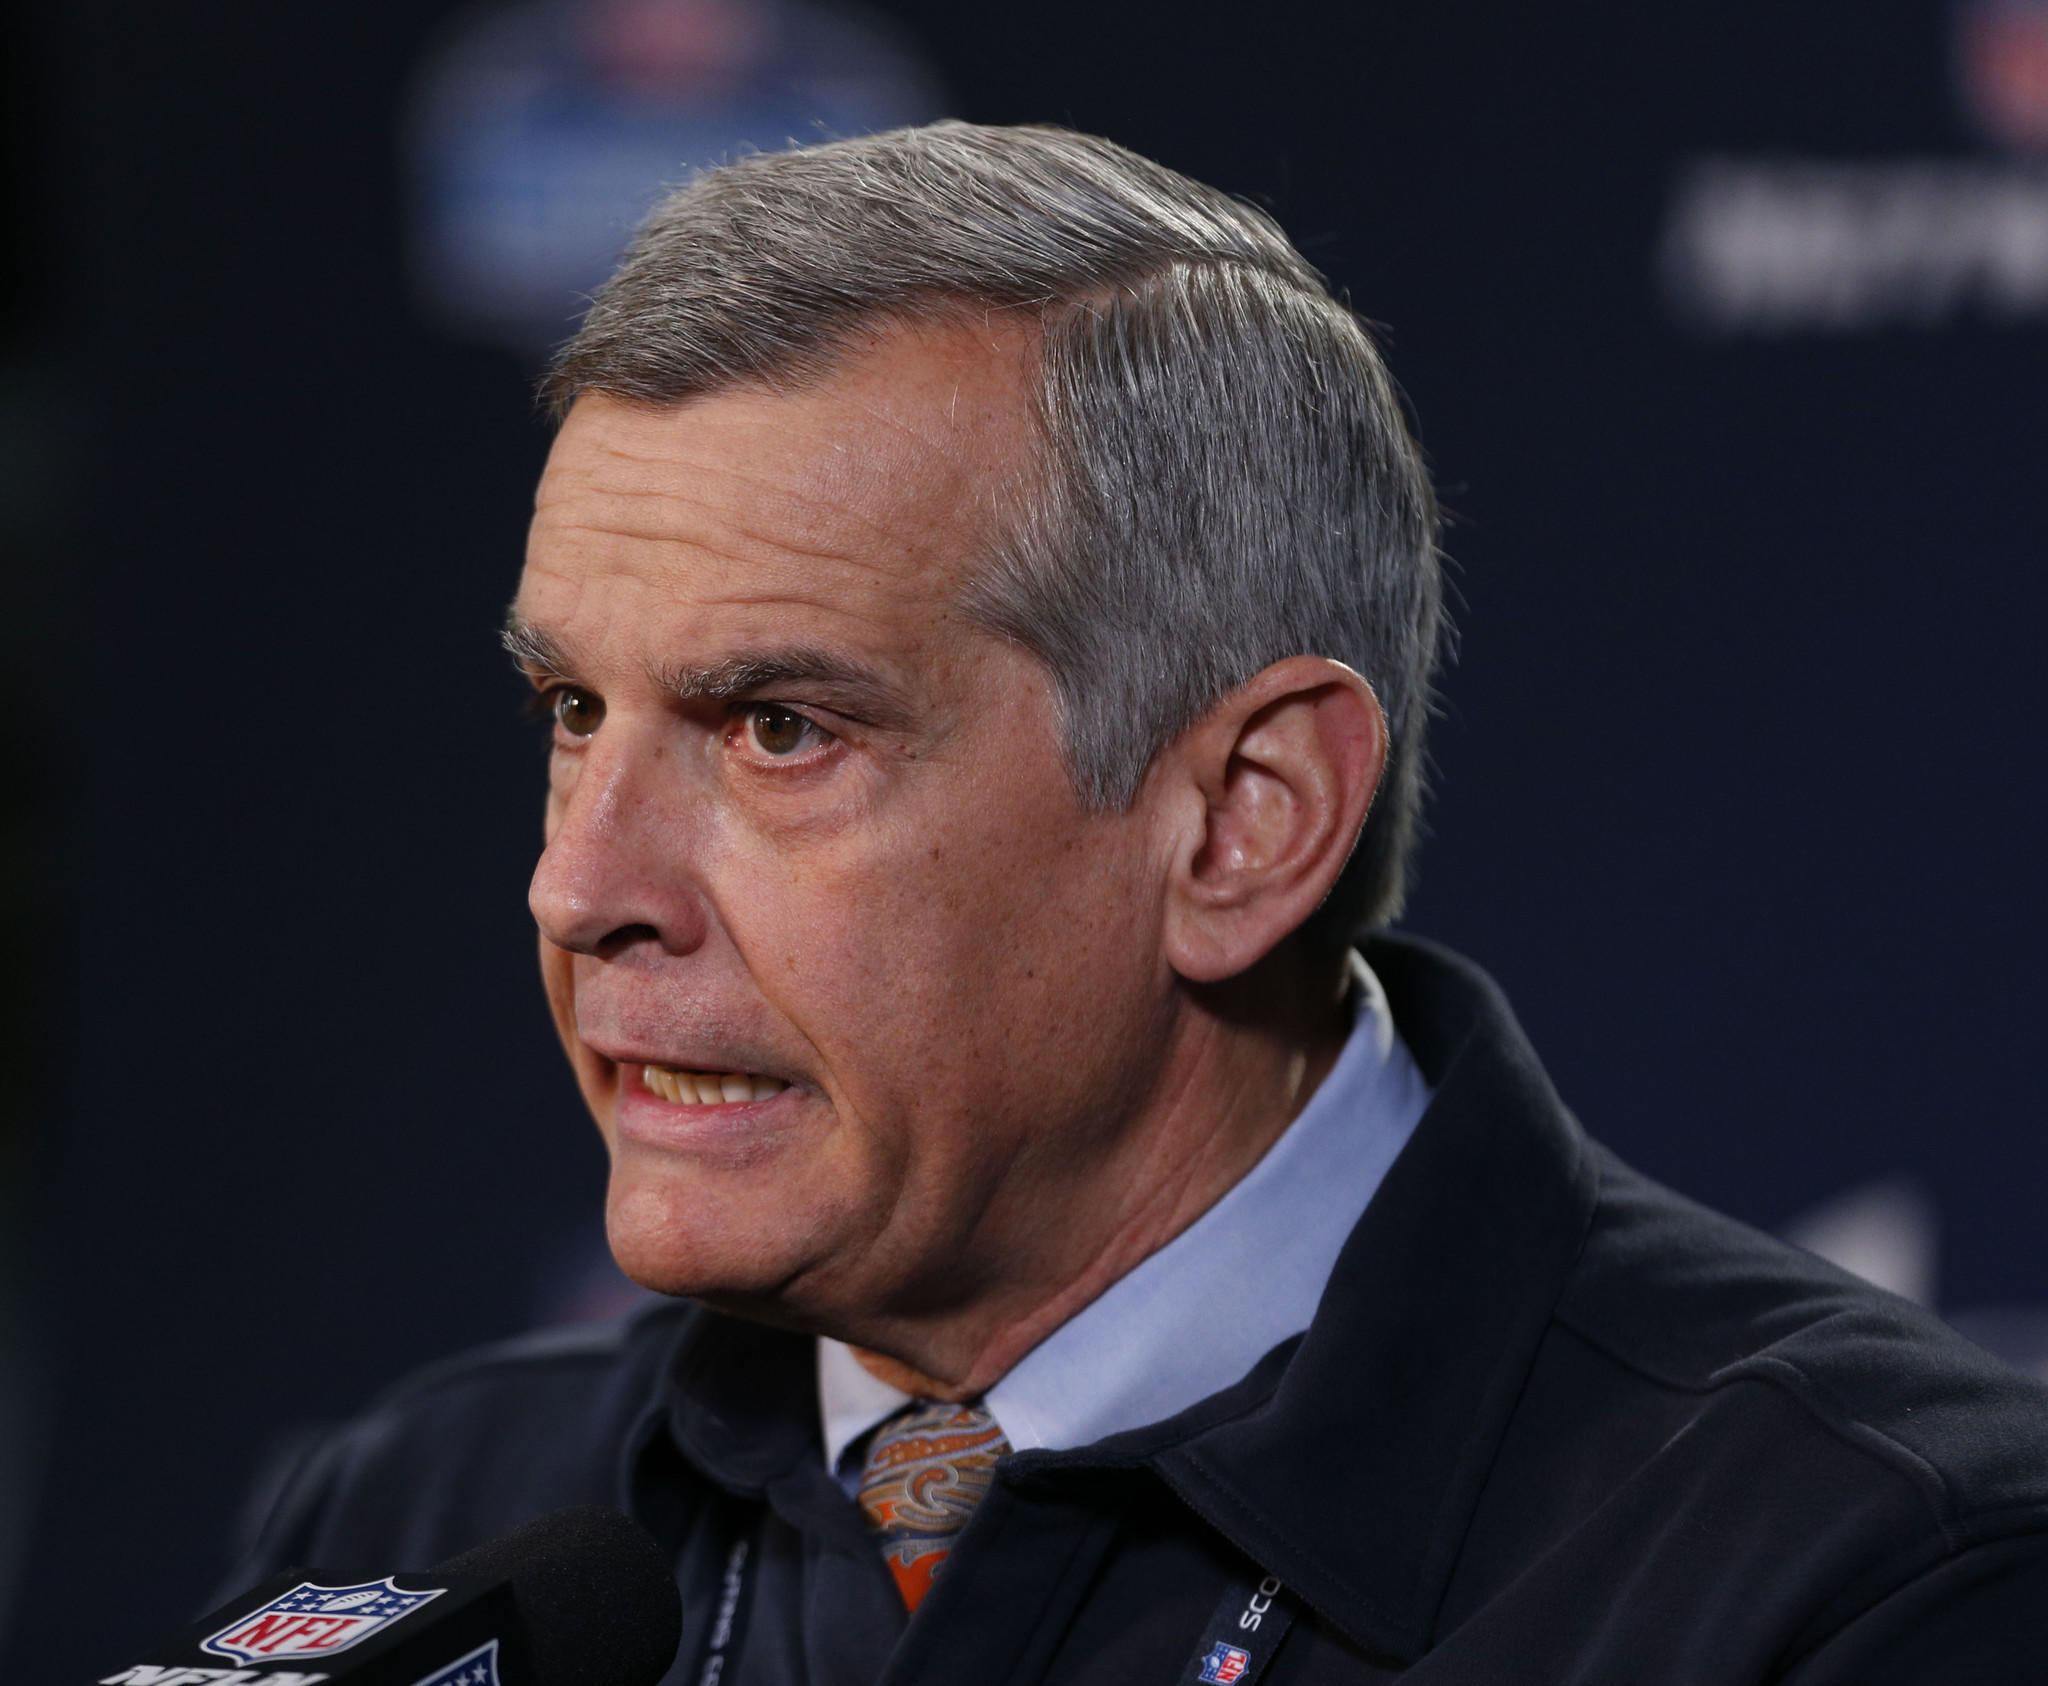 Chicago Bears general manager Phil Emery speaks during a press conference during the 2014 NFL Combine at Lucas Oil Stadium.